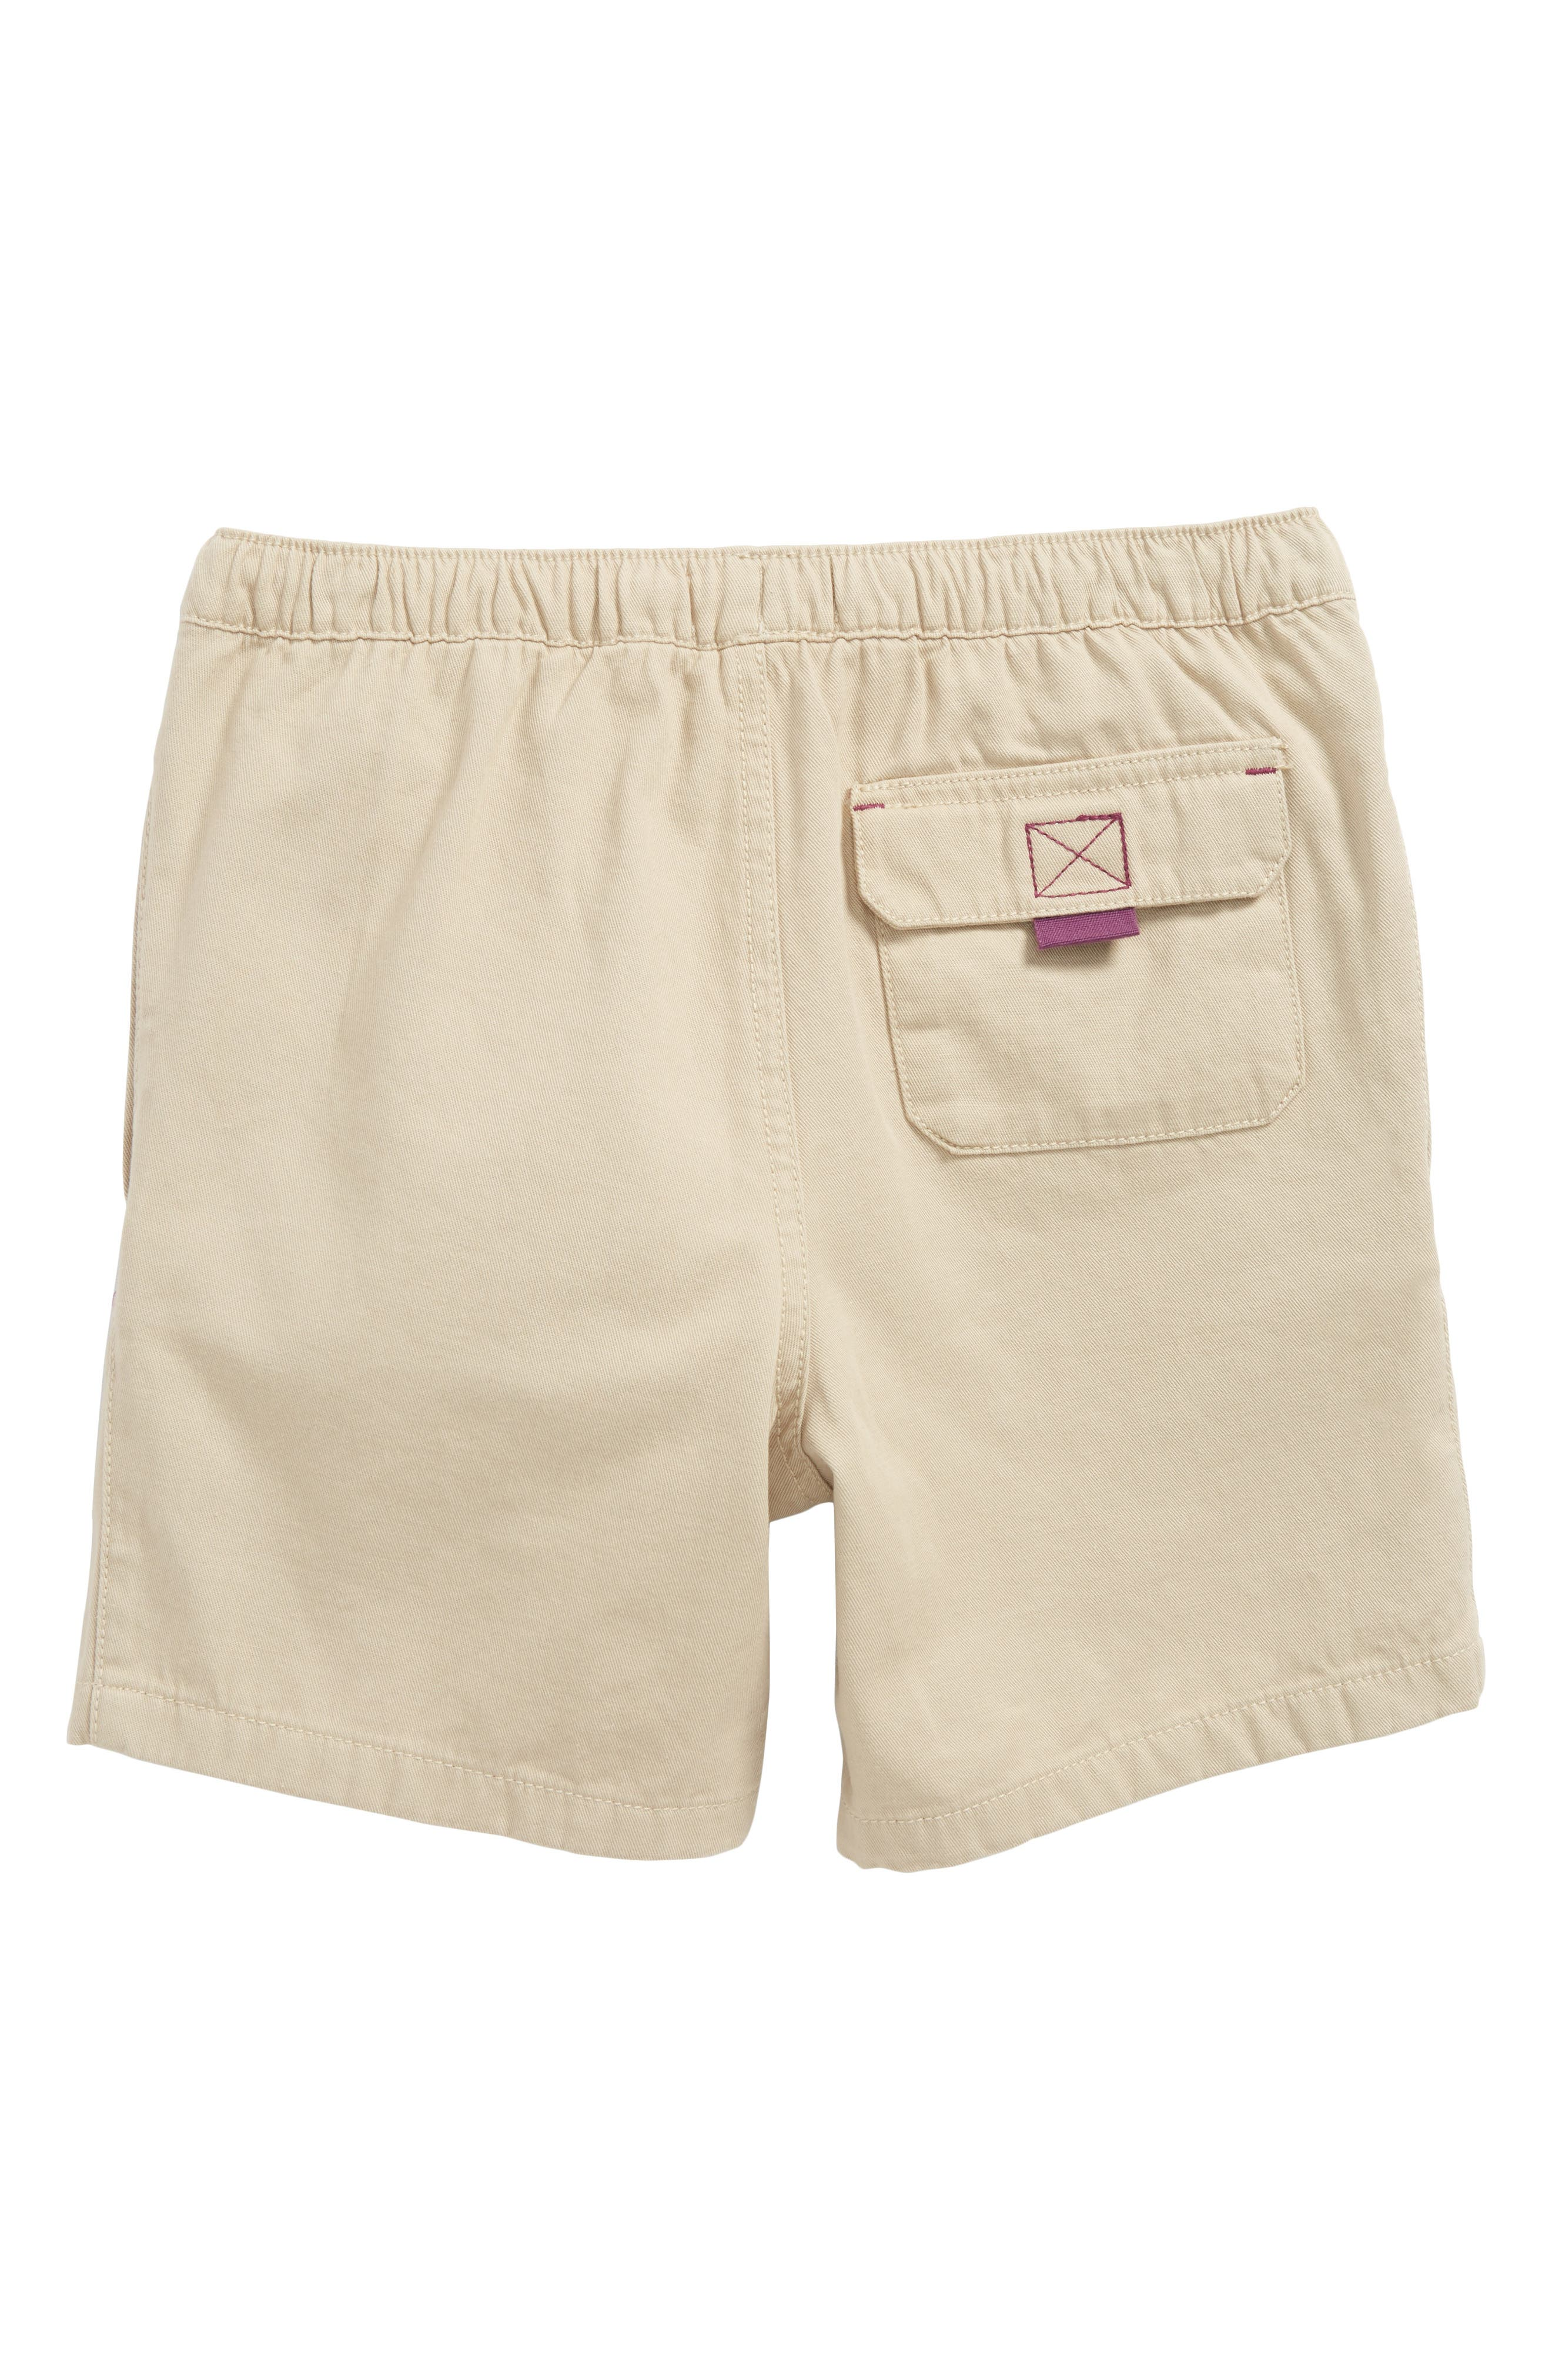 Drawstring Shorts,                             Alternate thumbnail 2, color,                             250